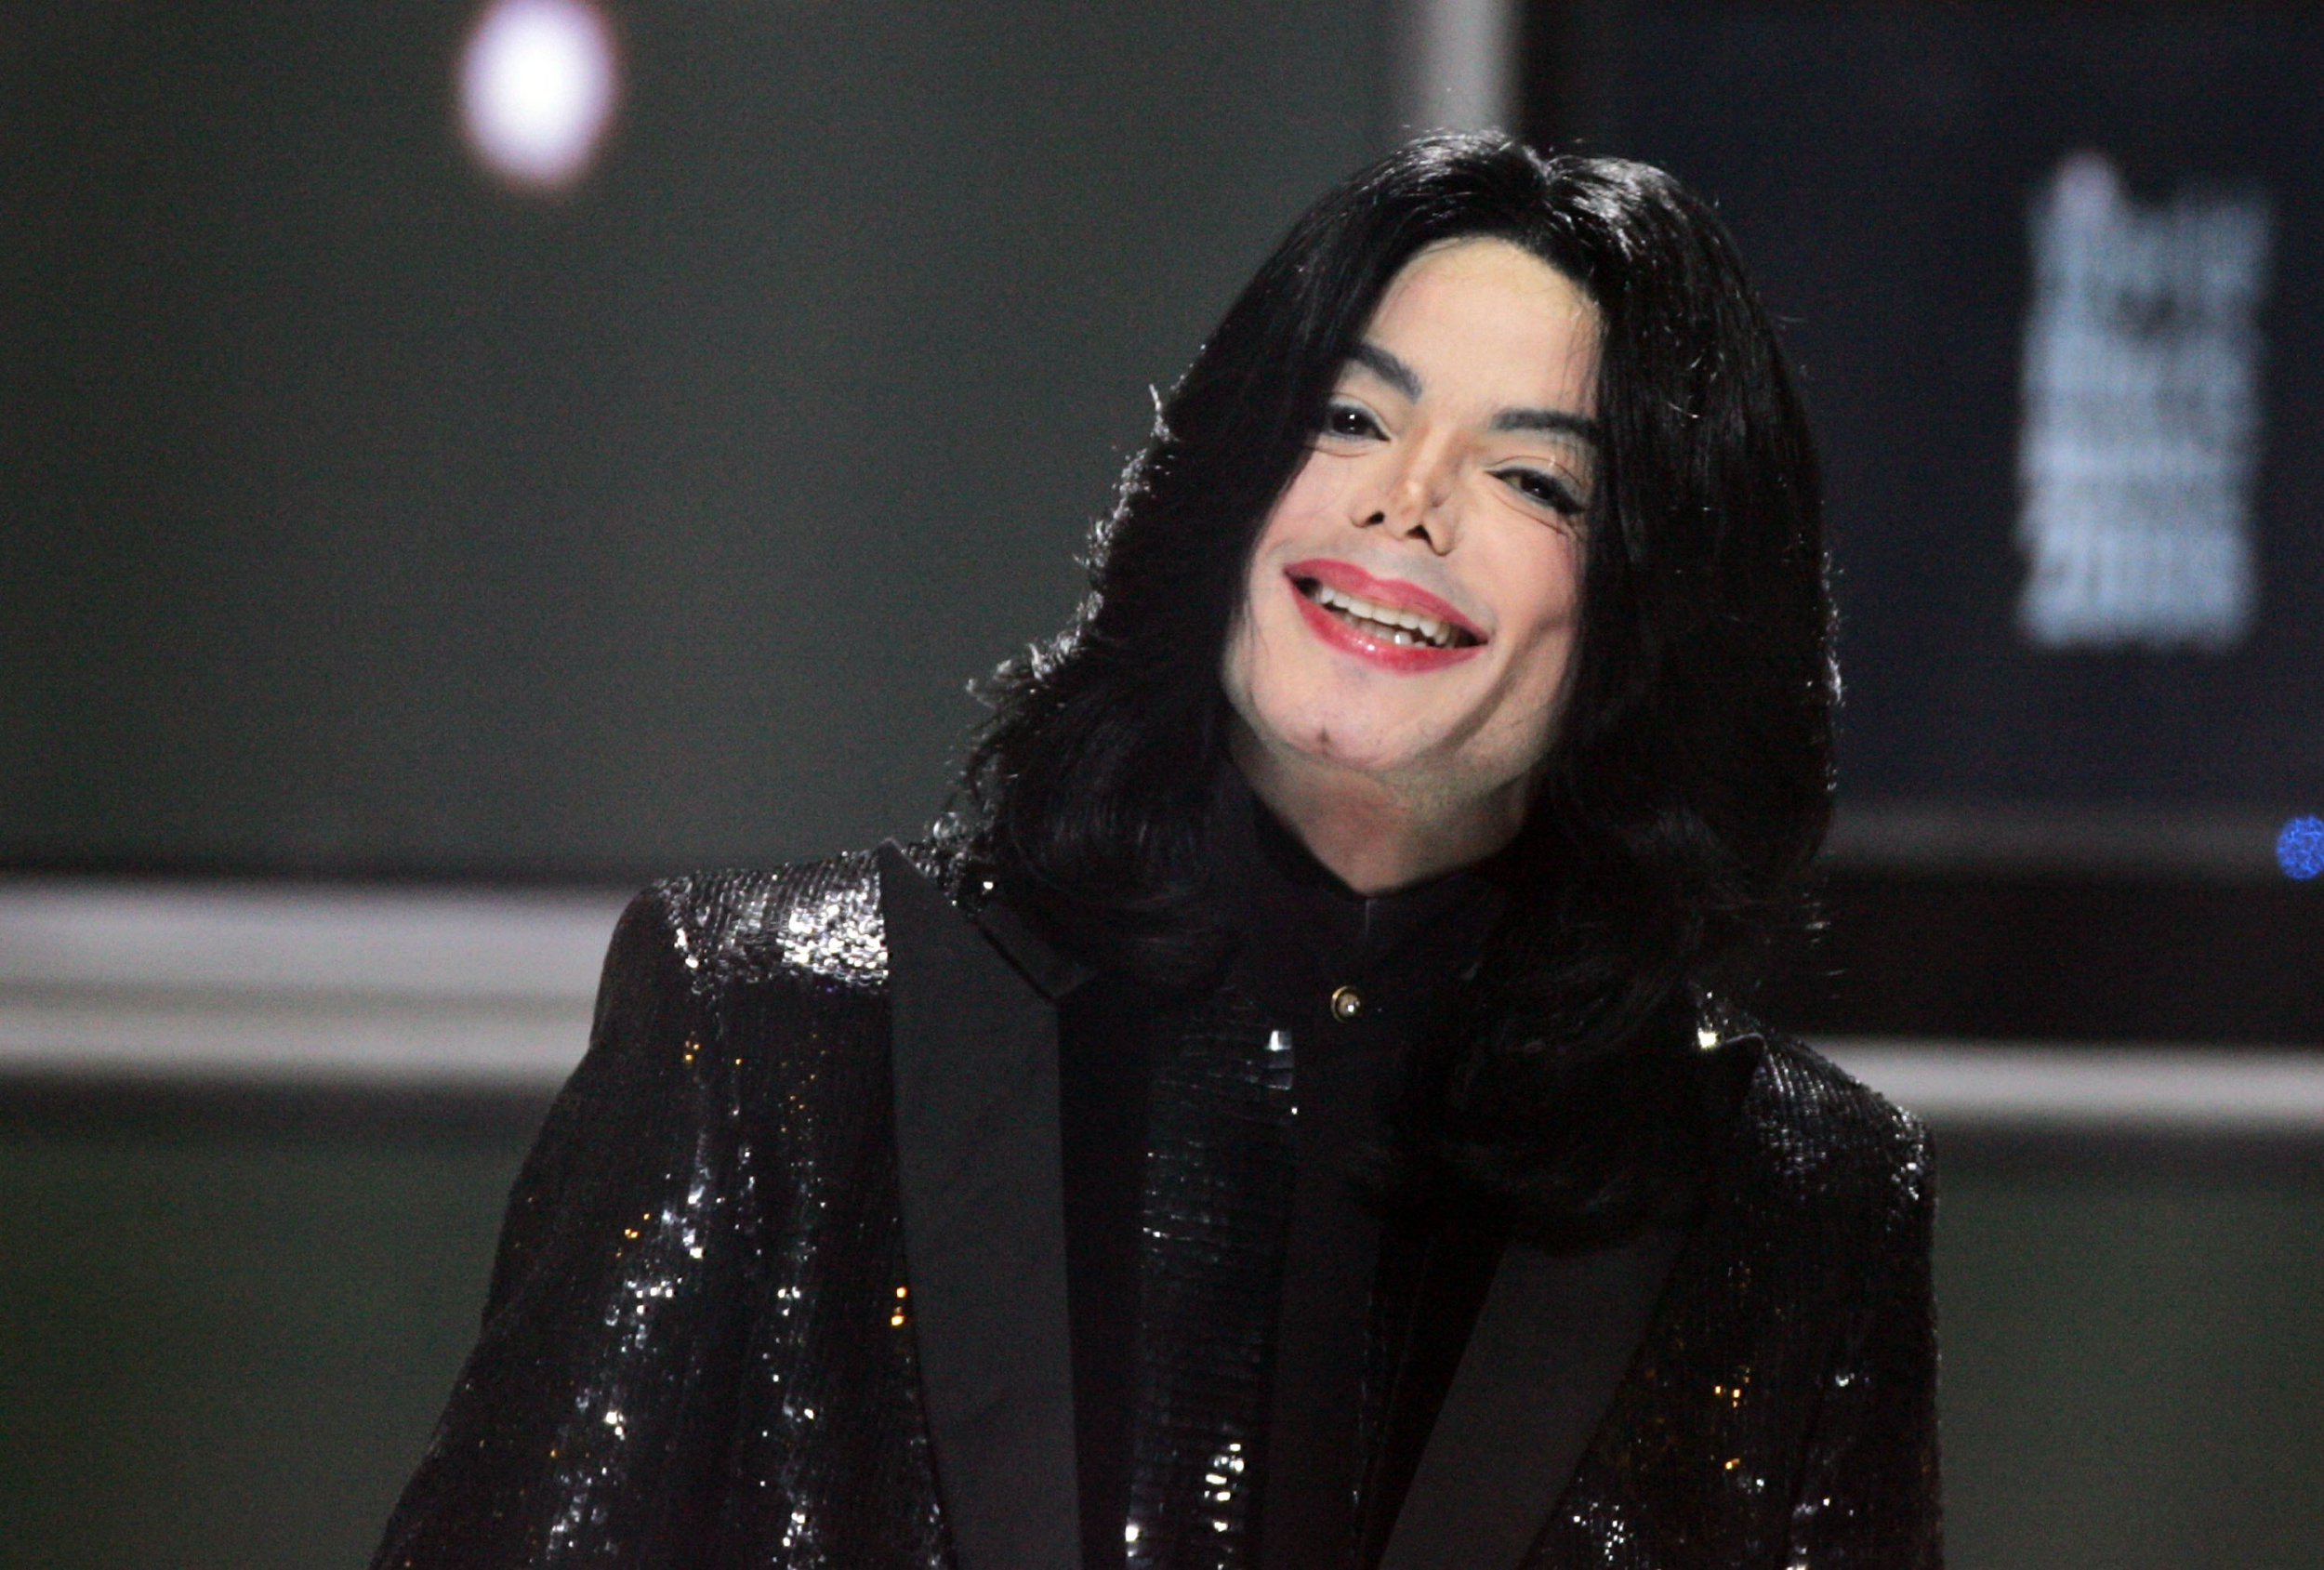 LONDON - NOVEMBER 15: Singer Michael Jackson performs on stage during the 2006 World Music Awards at Earls Court on November 15, 2006 in London. (Photo by Dave Hogan/Getty Images)